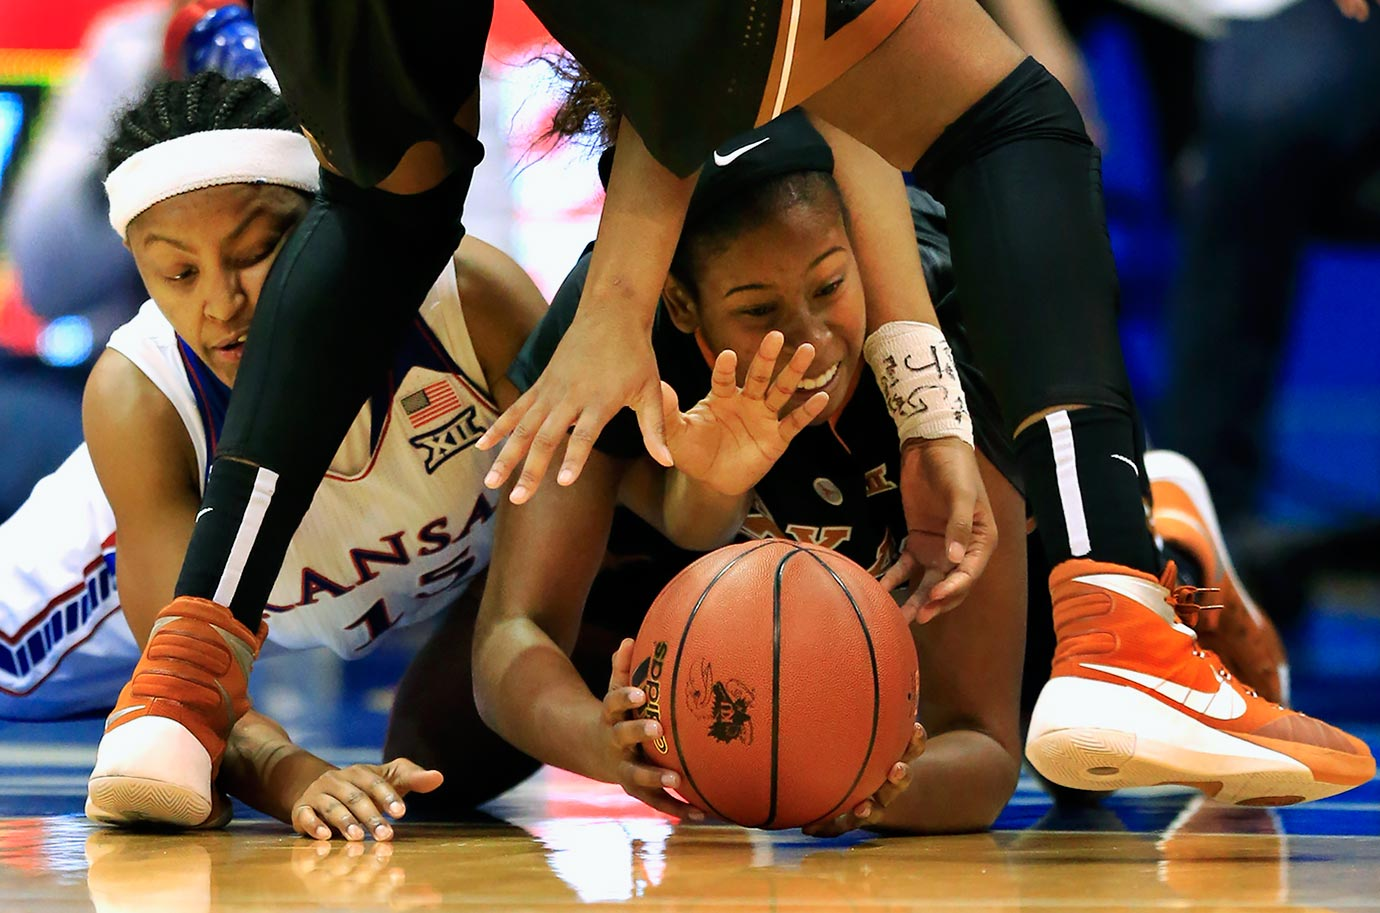 Kansas guard Aisia Robertson and Texas guard Ariel Atkins dive on the floor for a loose ball.